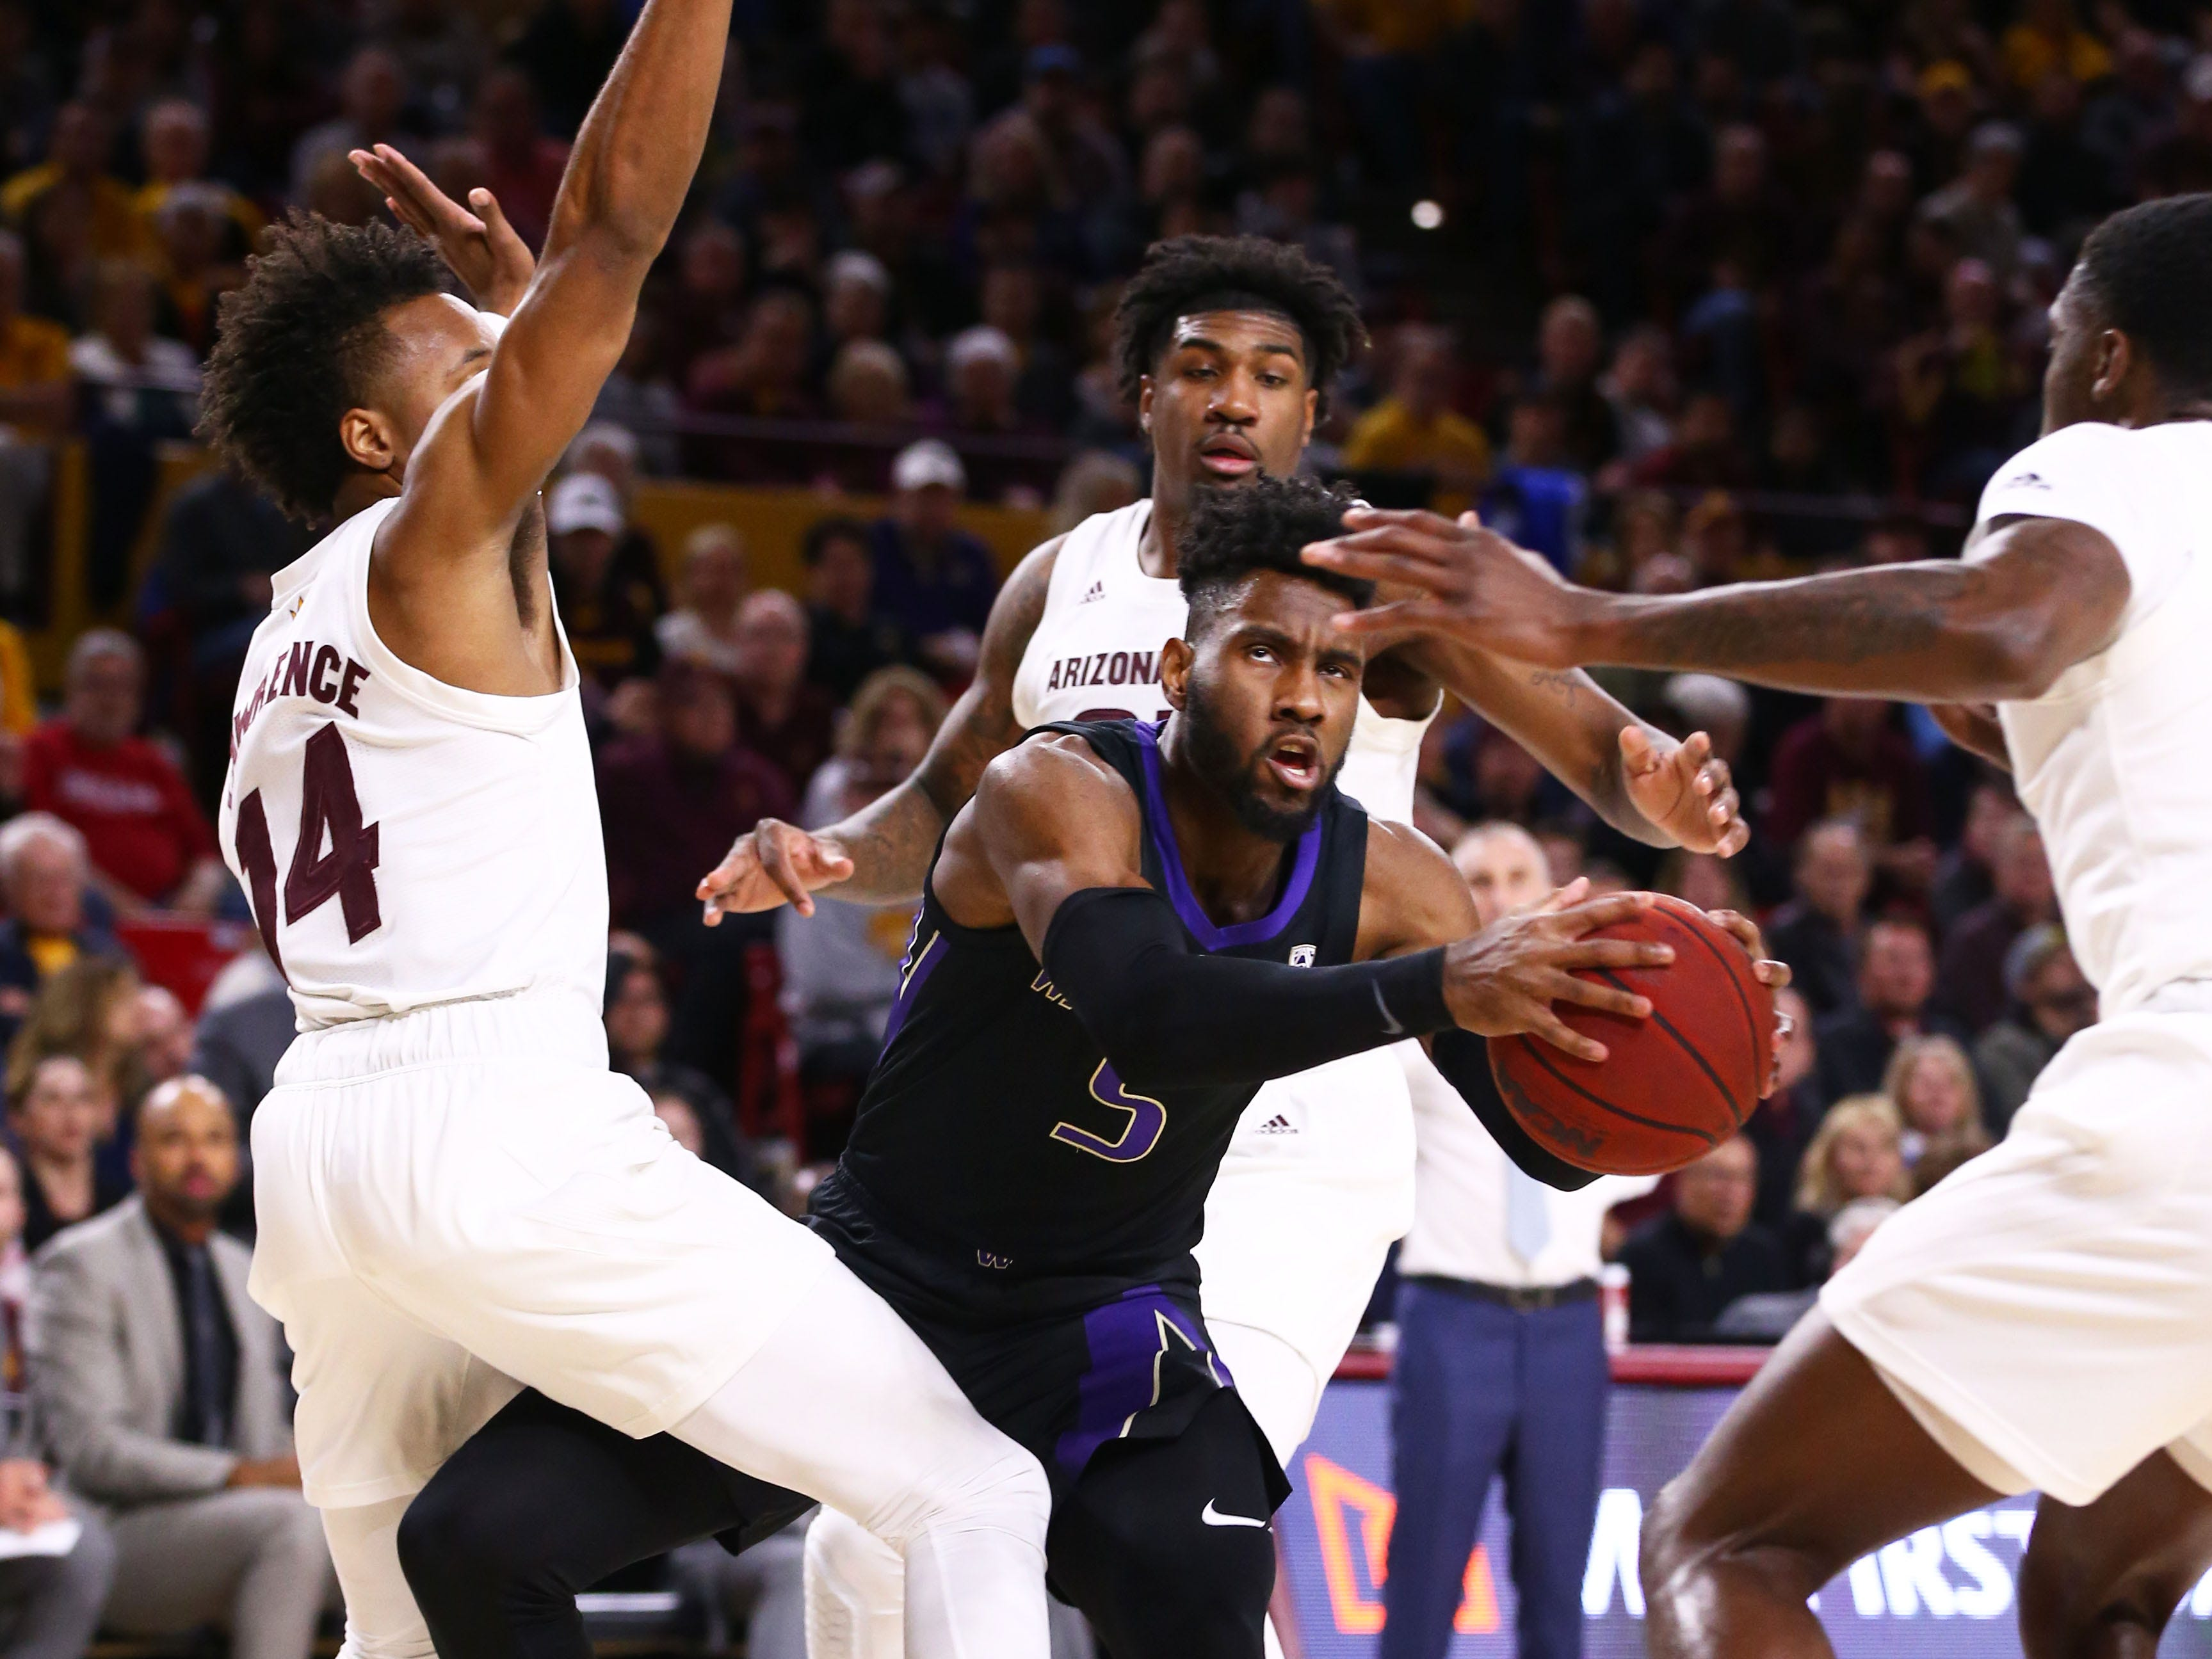 Arizona State Sun Devils forward Kimani Lawrence guards Washington Huskies' Jaylen Nowell in the first half on Feb. 9 at Wells Fargo Arena in Tempe.